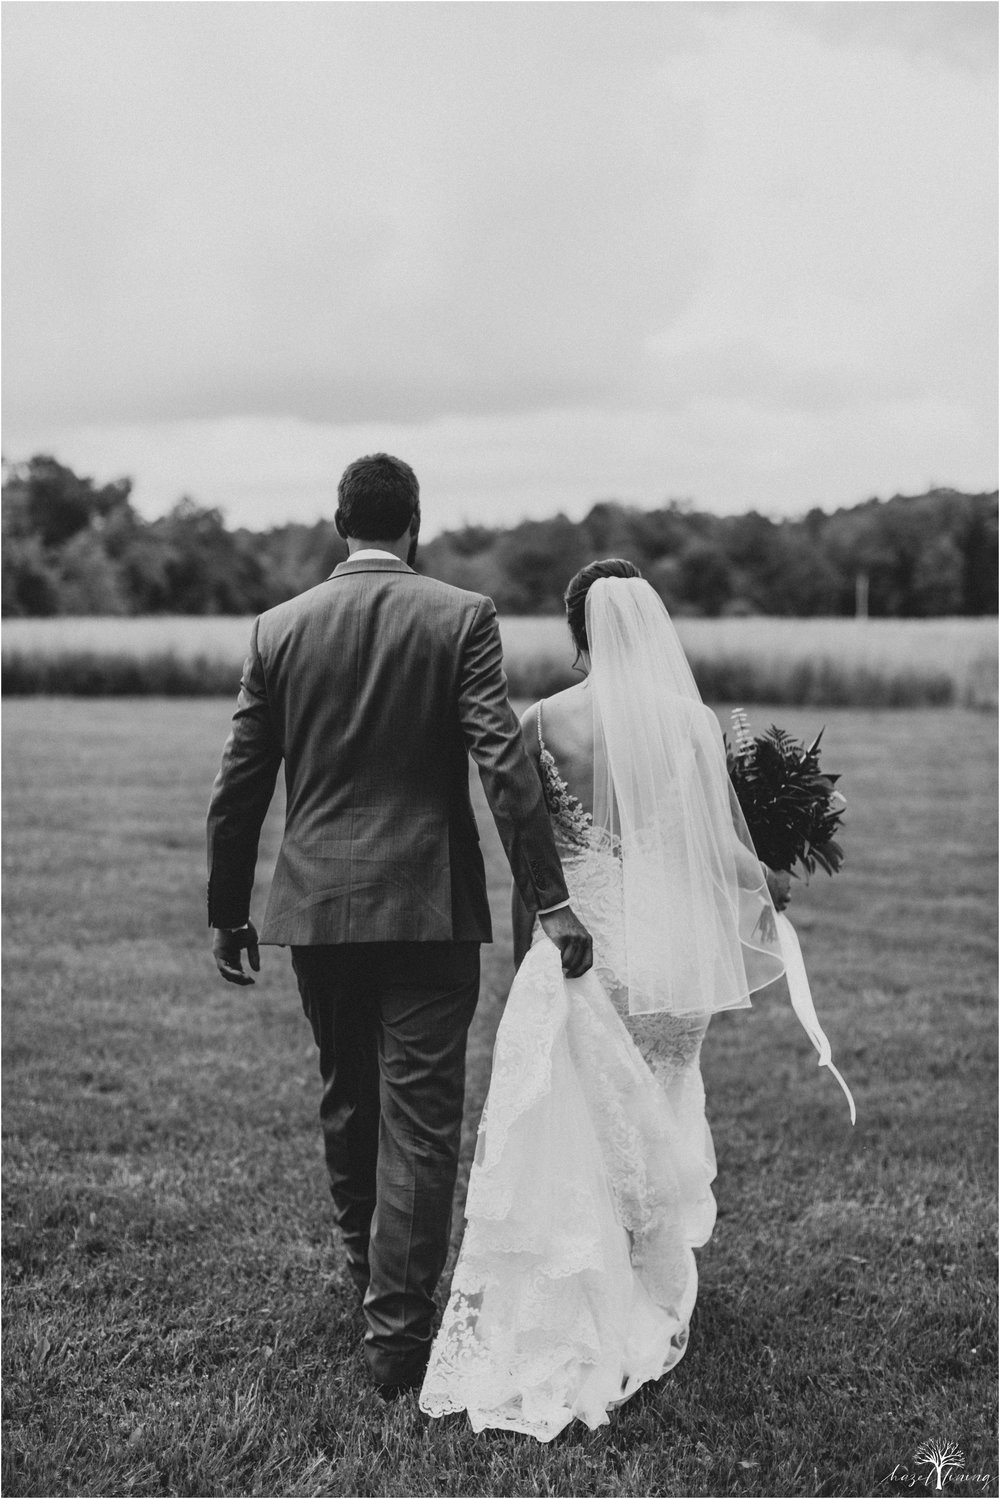 hazel-lining-travel-wedding-elopement-photography-lisa-landon-shoemaker-the-farm-bakery-and-events-bucks-county-quakertown-pennsylvania-summer-country-outdoor-farm-wedding_0082.jpg